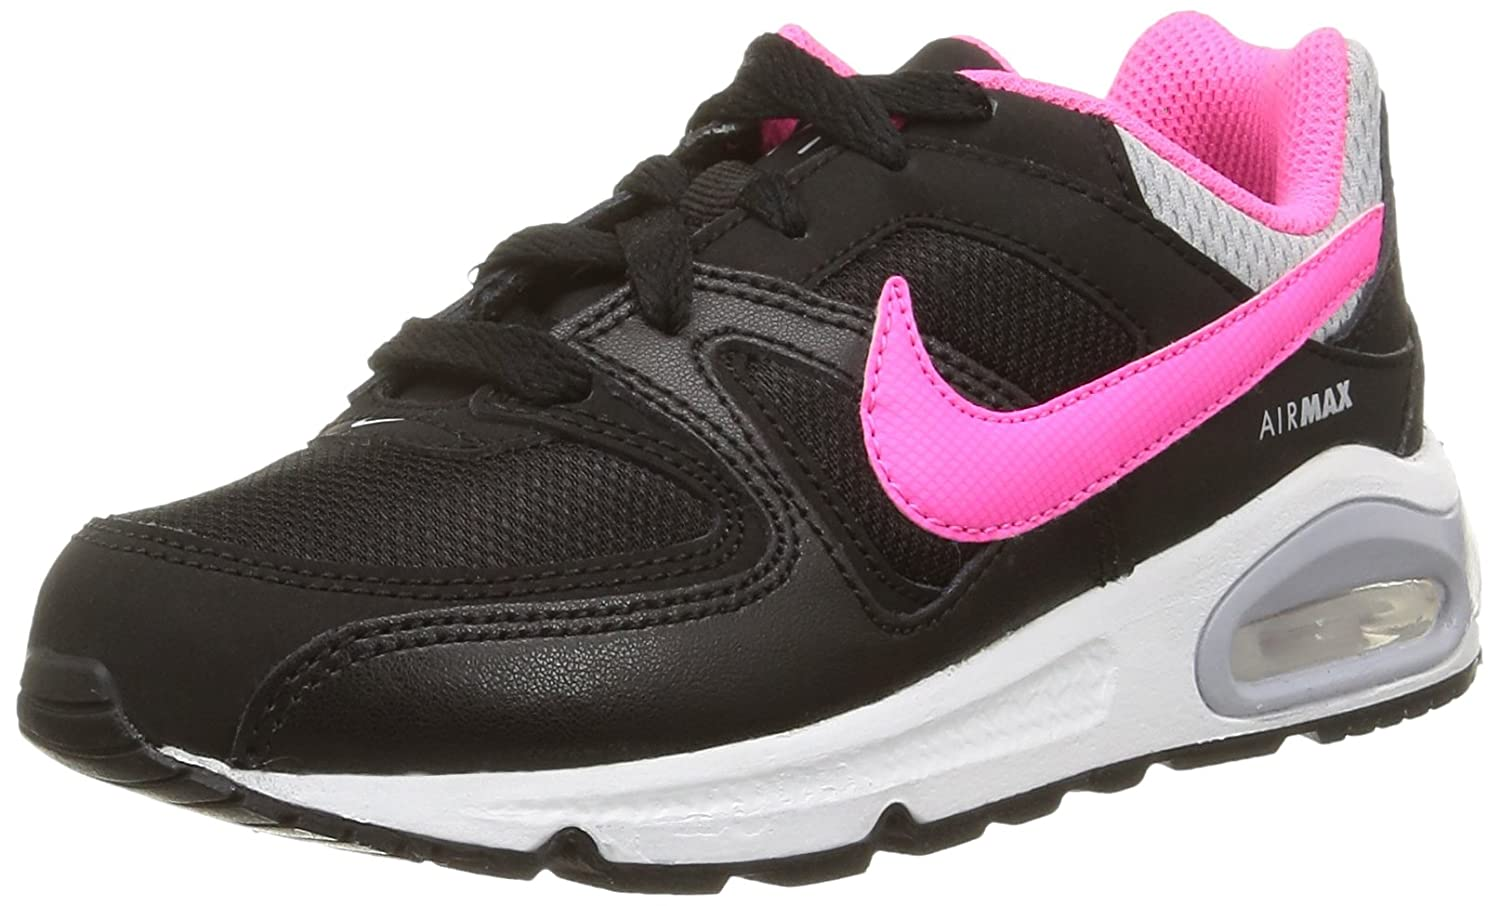 Nike Air Max Command (PS) -, Homme, Multicolore (Copa/White-Copa-White), Taille 30